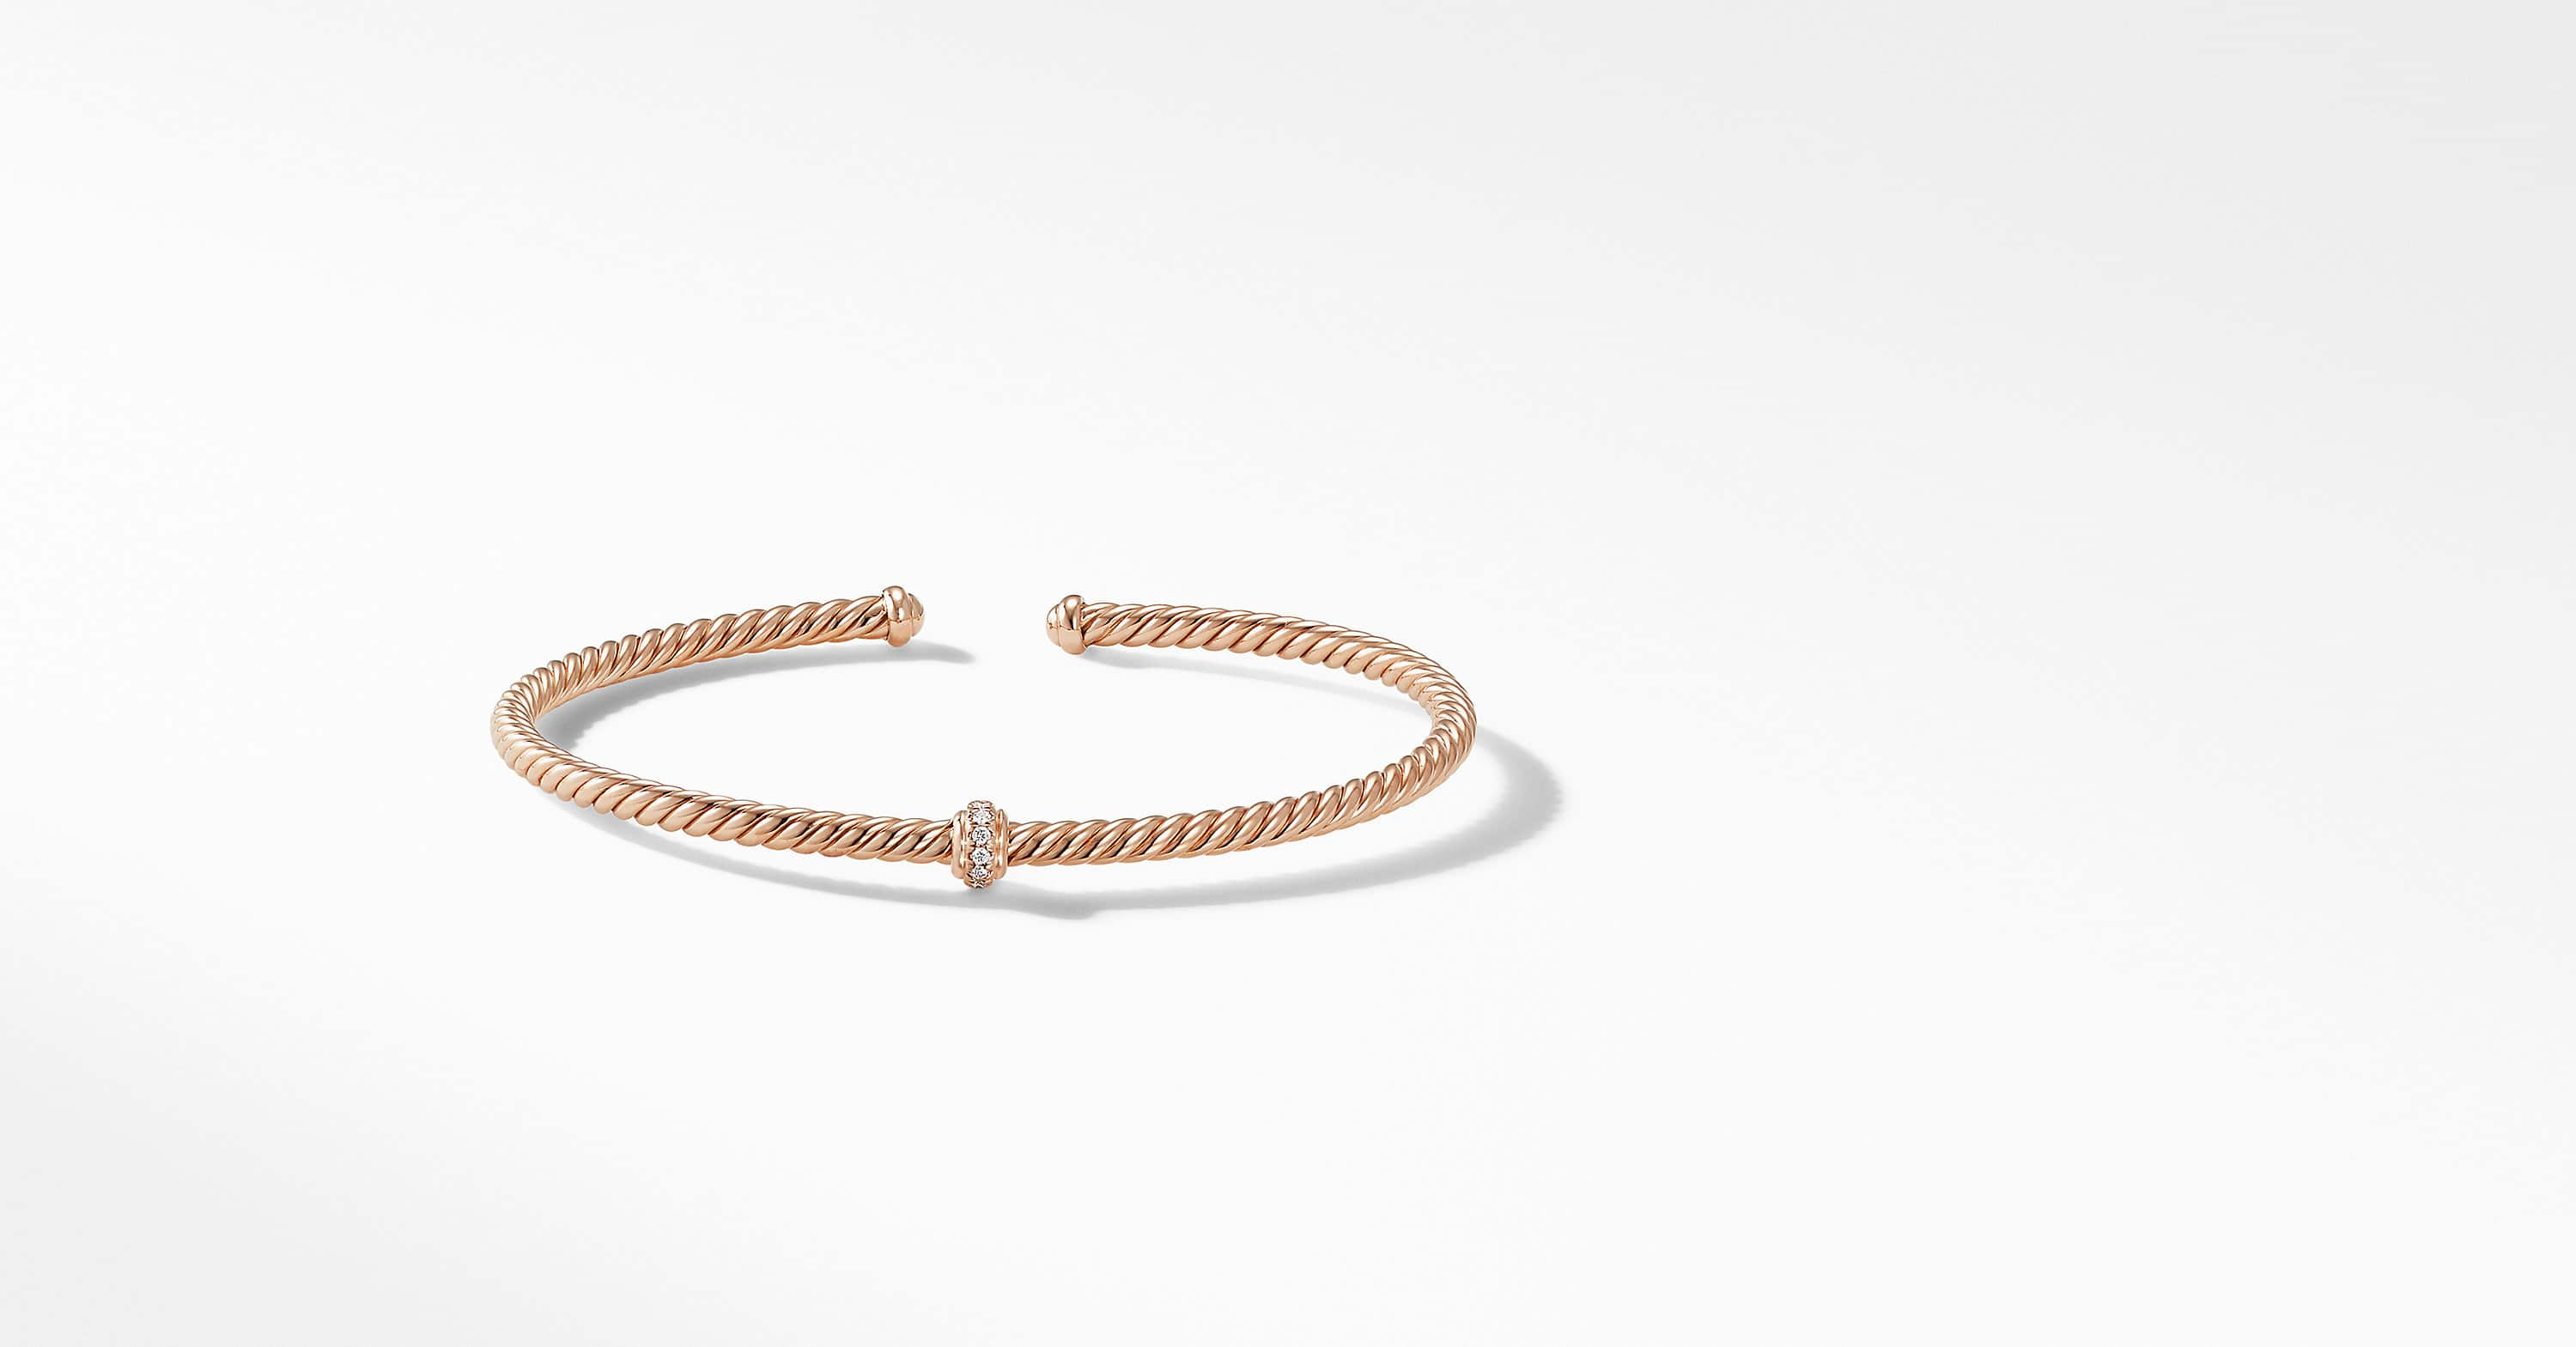 Cable Spira Center Station Bracelet in 18K Rose Gold with Diamonds, 3mm